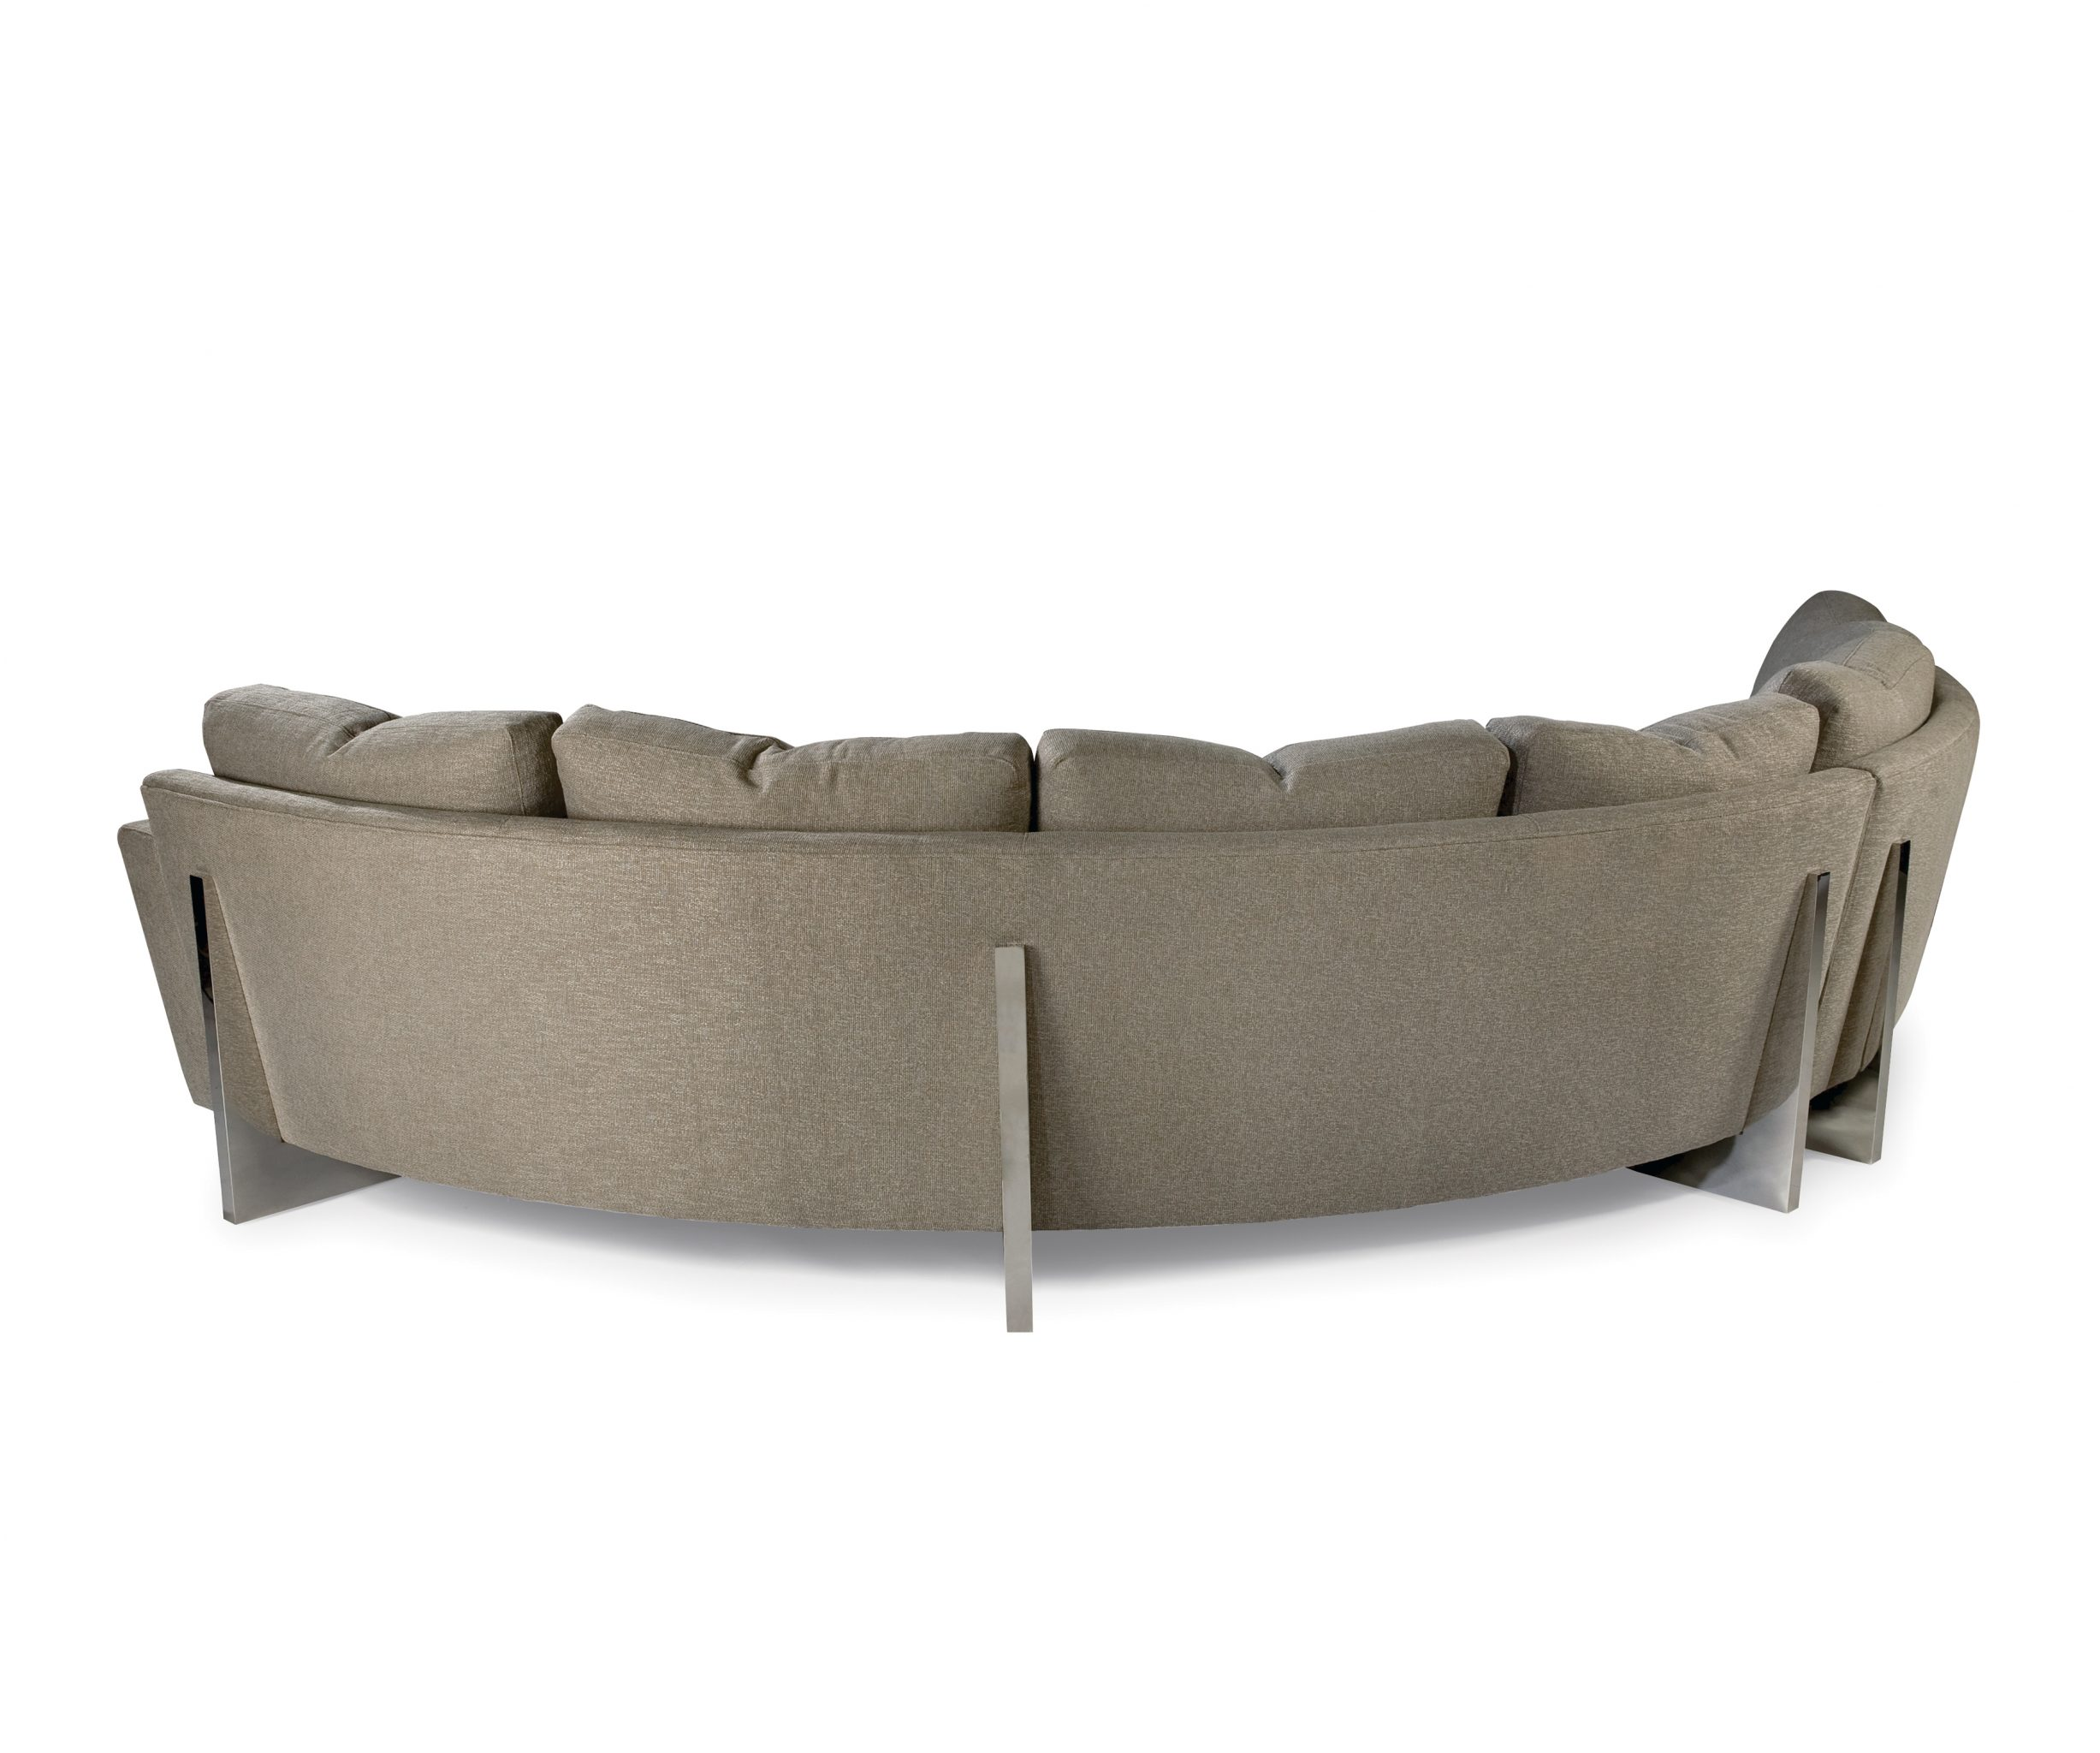 Cool Clip Curved Sectional - back view